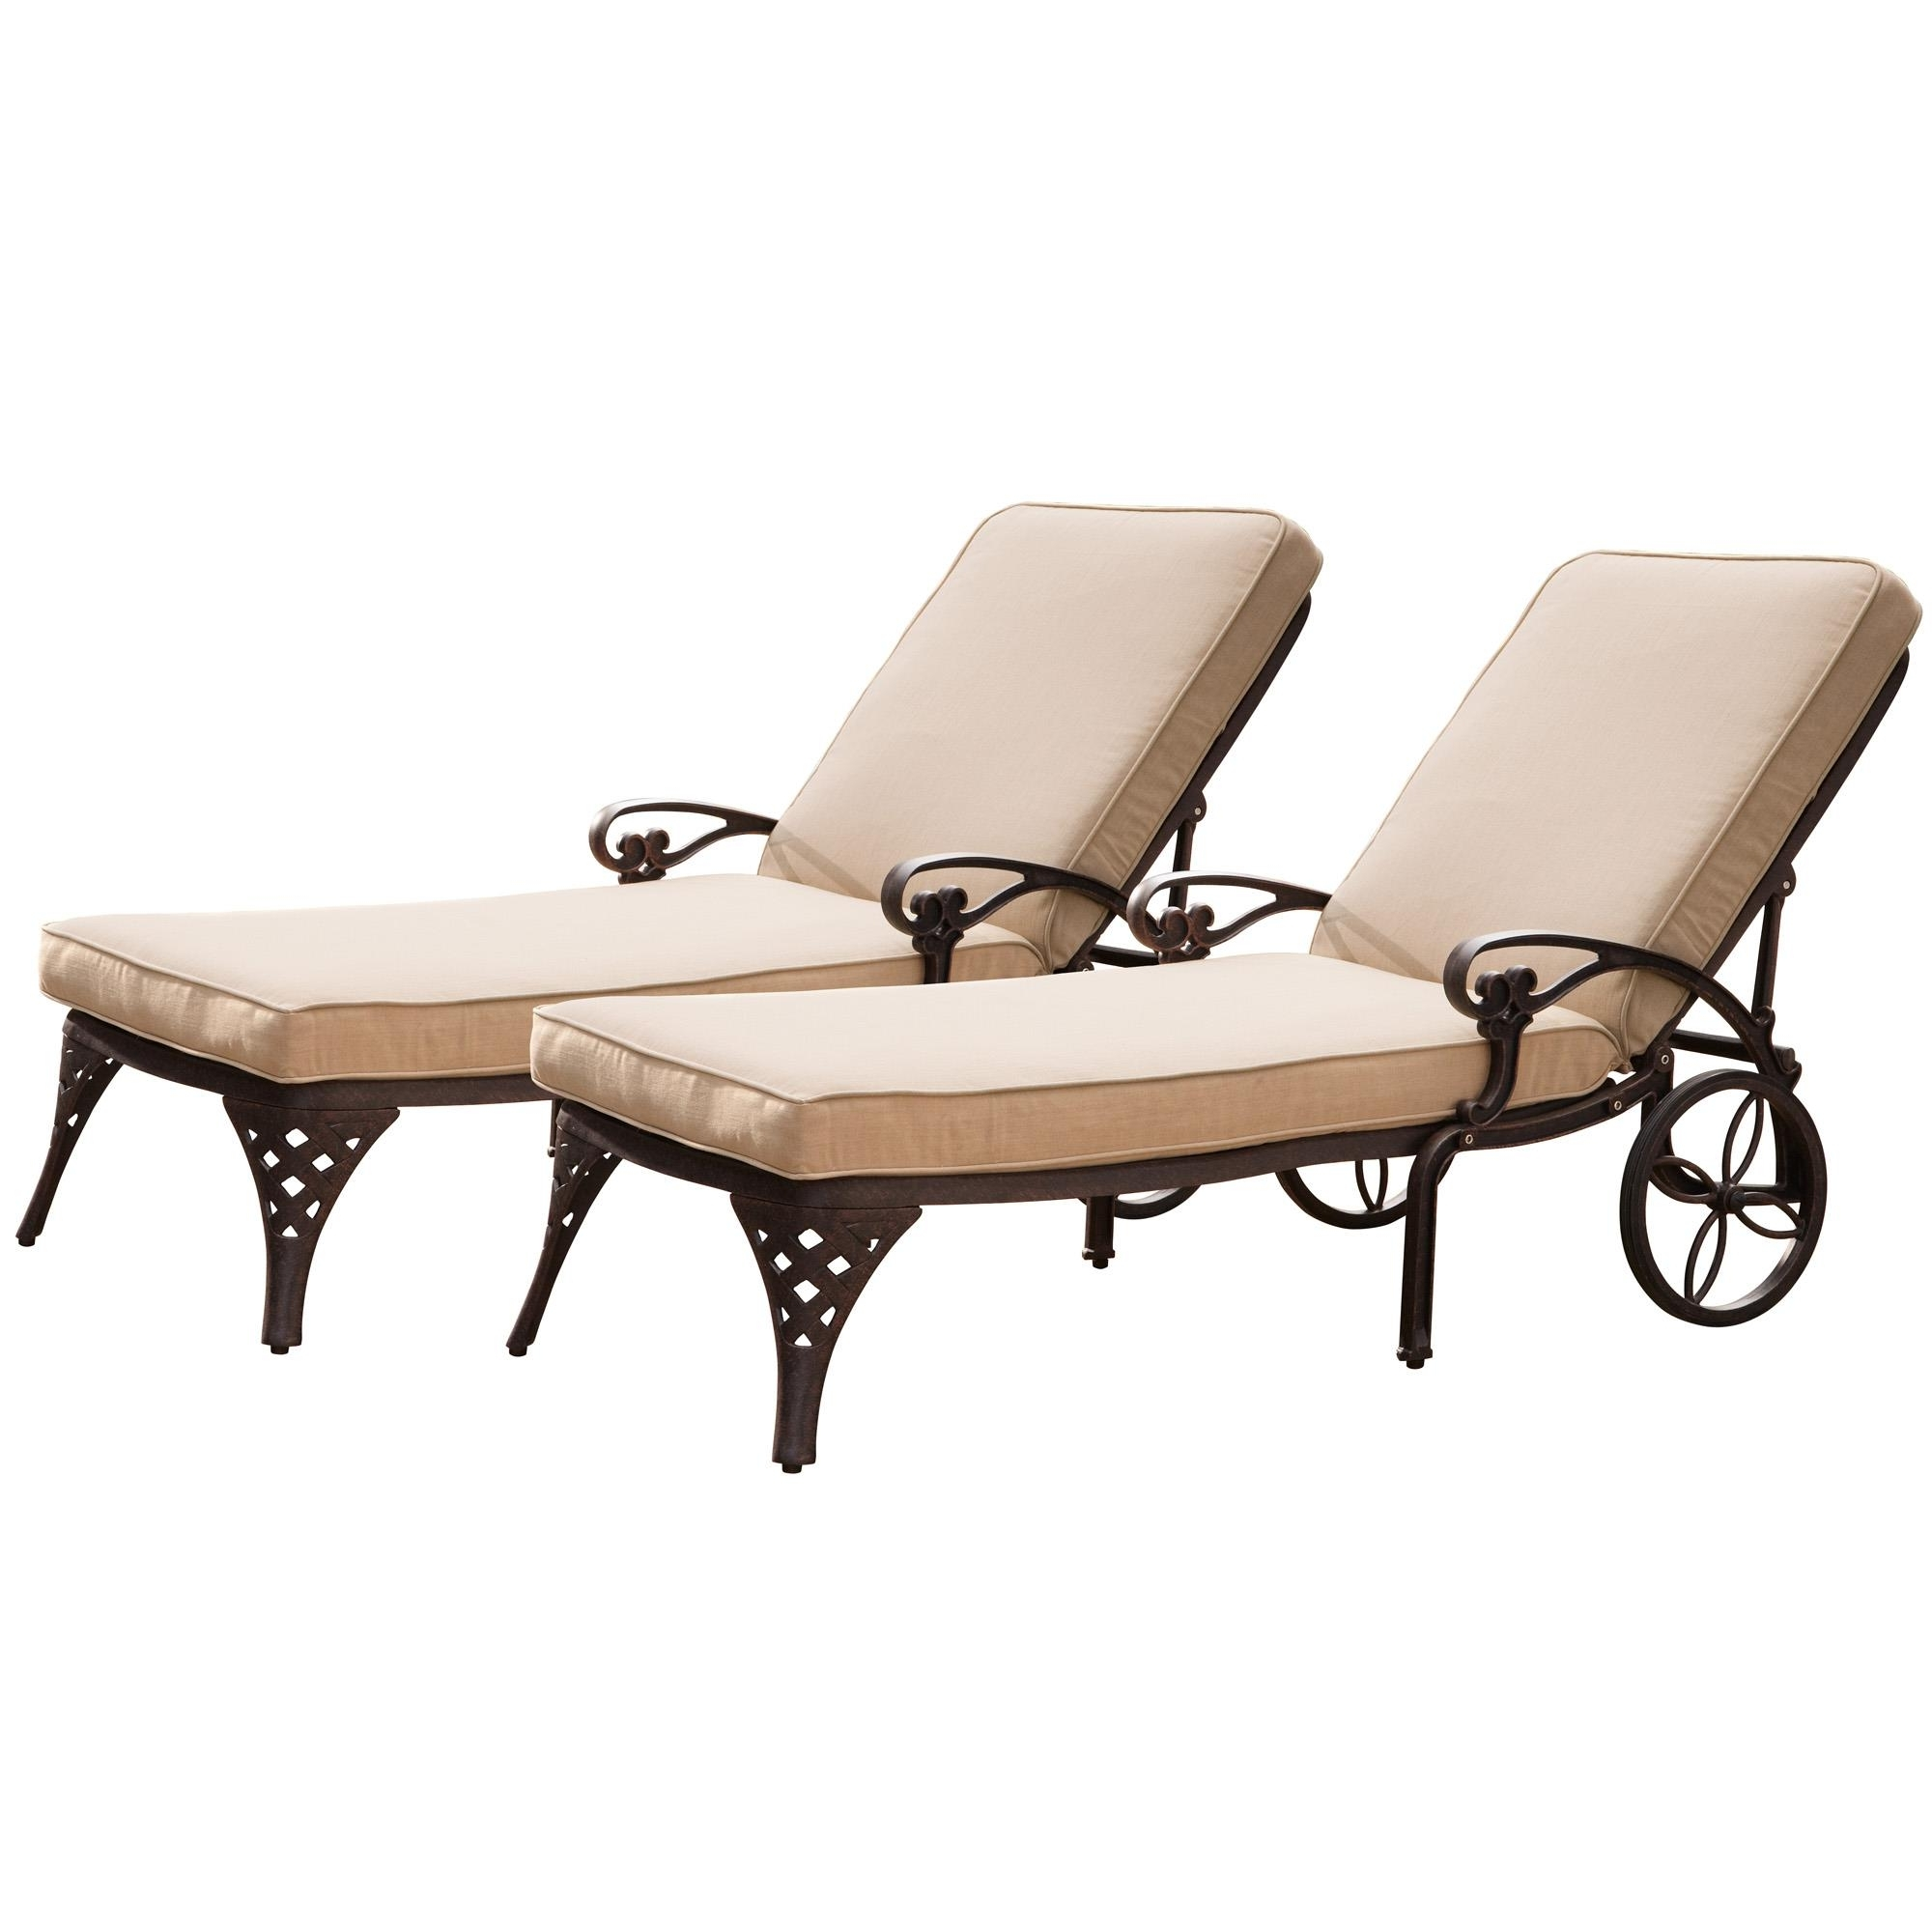 Preferred Chaise Lounge Chairs At Lowes Pertaining To Furniture: Stylish Lowes Lounge Chairs For Your Relax (View 12 of 15)